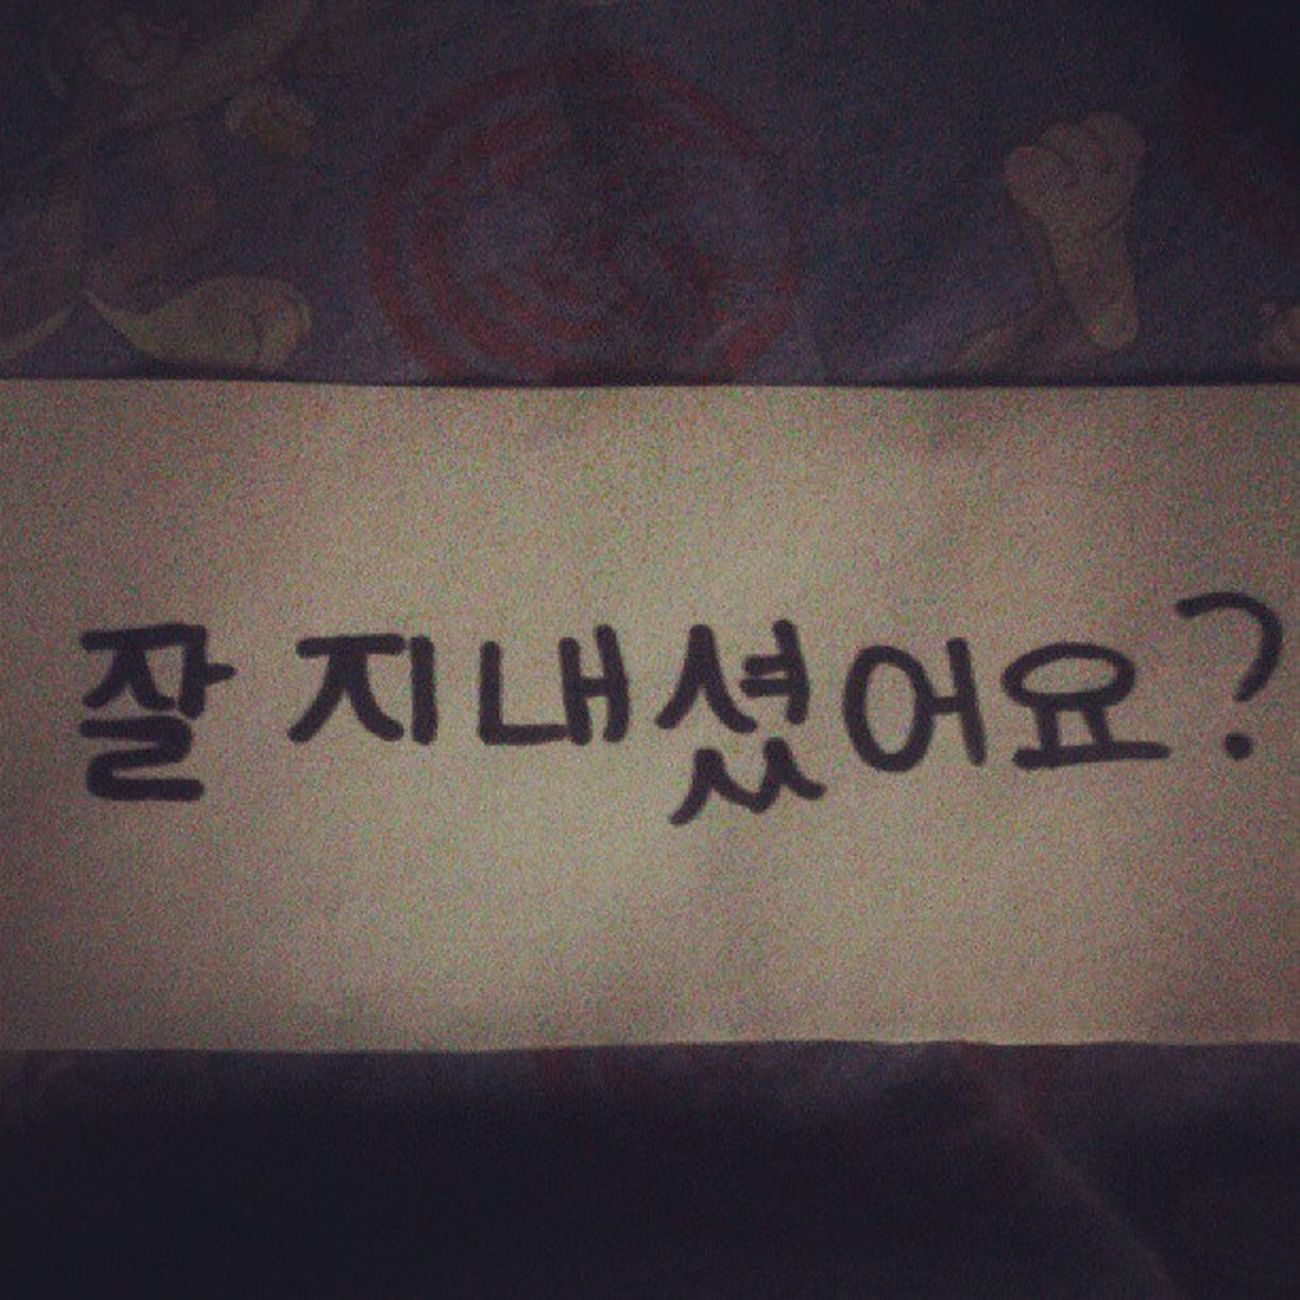 How are you? Badkoreanhandwriting lol